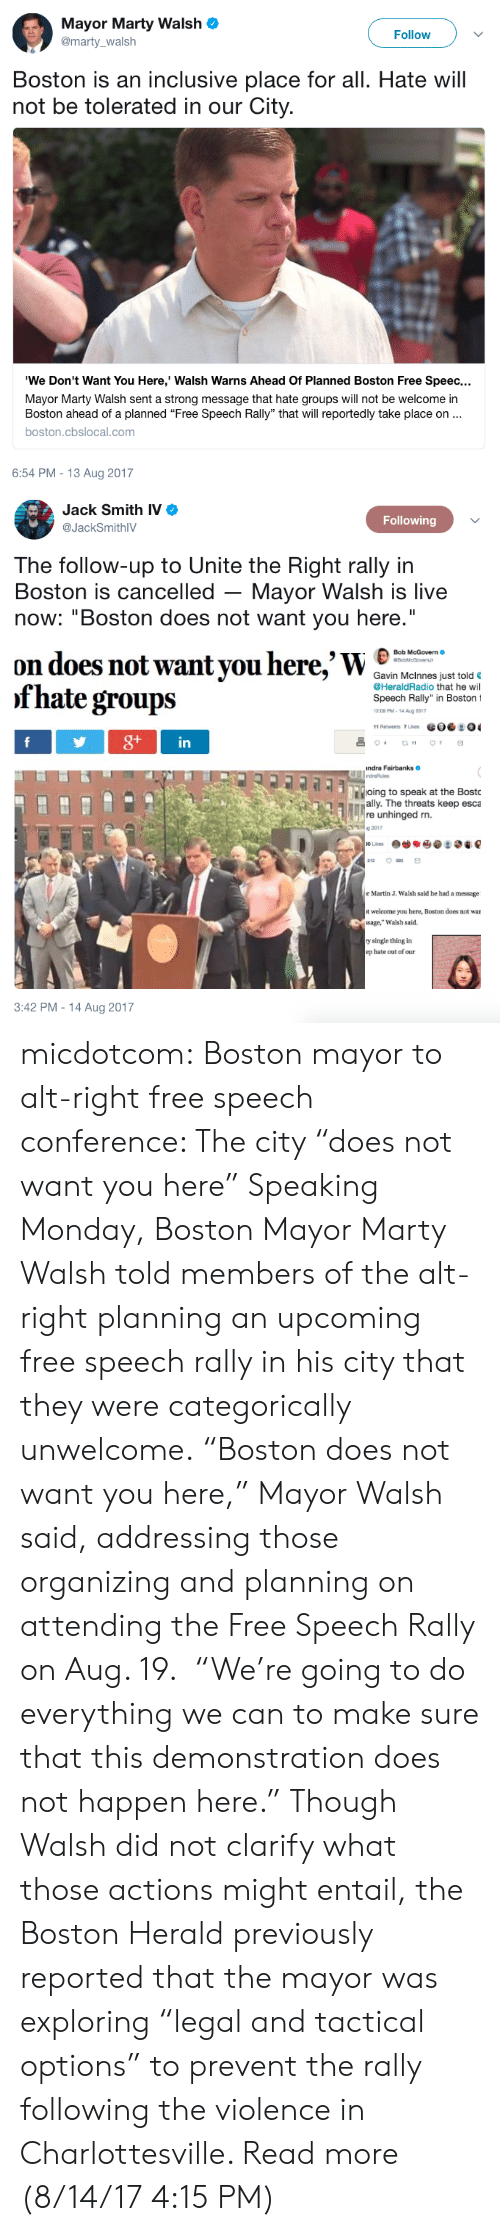 """Organizing: Mayor Marty Walsh  @marty walsh  Follow  Boston is an inclusive place for all. Hate will  not be tolerated in our City.  """"We Don't Want You Here,' Walsh Warns Ahead Of Planned Boston Free Speec  Mayor Marty Walsh sent a strong message that hate groups will not be welcome in  Boston ahead of a planned """"Free Speech Rally"""" that will reportedly take place on..  boston.cbslocal.com  6:54 PM-13 Aug 2017   Jack Smith IV  @JackSmithIV  Following  The follow-up to Unite the Right rally in  Boston is cancelled - Mayor Walsh is live  now: """"Boston does not want you here.""""  on does not want you here,'WC  of hate groups  Bob McGovern  Gavin Mclnnes just told  @HeraldRadio that he wil  Speech Rally"""" in Boston 1  2.00 PM-14 Ag 201  in  andra Fairbanks  ioing to speak at the Bosto  Tamally. The threats keep esca  re unhinged rn.  2017  r Martin J. Walsh said he had a message  t welcome you here, Boston does not war  ssage,"""" Walsh said.  y single thing in  ep hate out of our  3:42 PM-14 Aug 2017 micdotcom: Boston mayor to alt-right free speech conference: The city """"does not want you here"""" Speaking Monday, Boston Mayor Marty Walsh told members of the alt-right planning an upcoming free speech rally in his city that they were categorically unwelcome.  """"Boston does not want you here,"""" Mayor Walsh said, addressing those organizing and planning on attending the Free Speech Rally on Aug. 19. """"We're going to do everything we can to make sure that this demonstration does not happen here."""" Though Walsh did not clarify what those actions might entail, the Boston Herald previously reported that the mayor was exploring """"legal and tactical options"""" to prevent the rally following the violence in Charlottesville. Read more (8/14/17 4:15 PM)"""